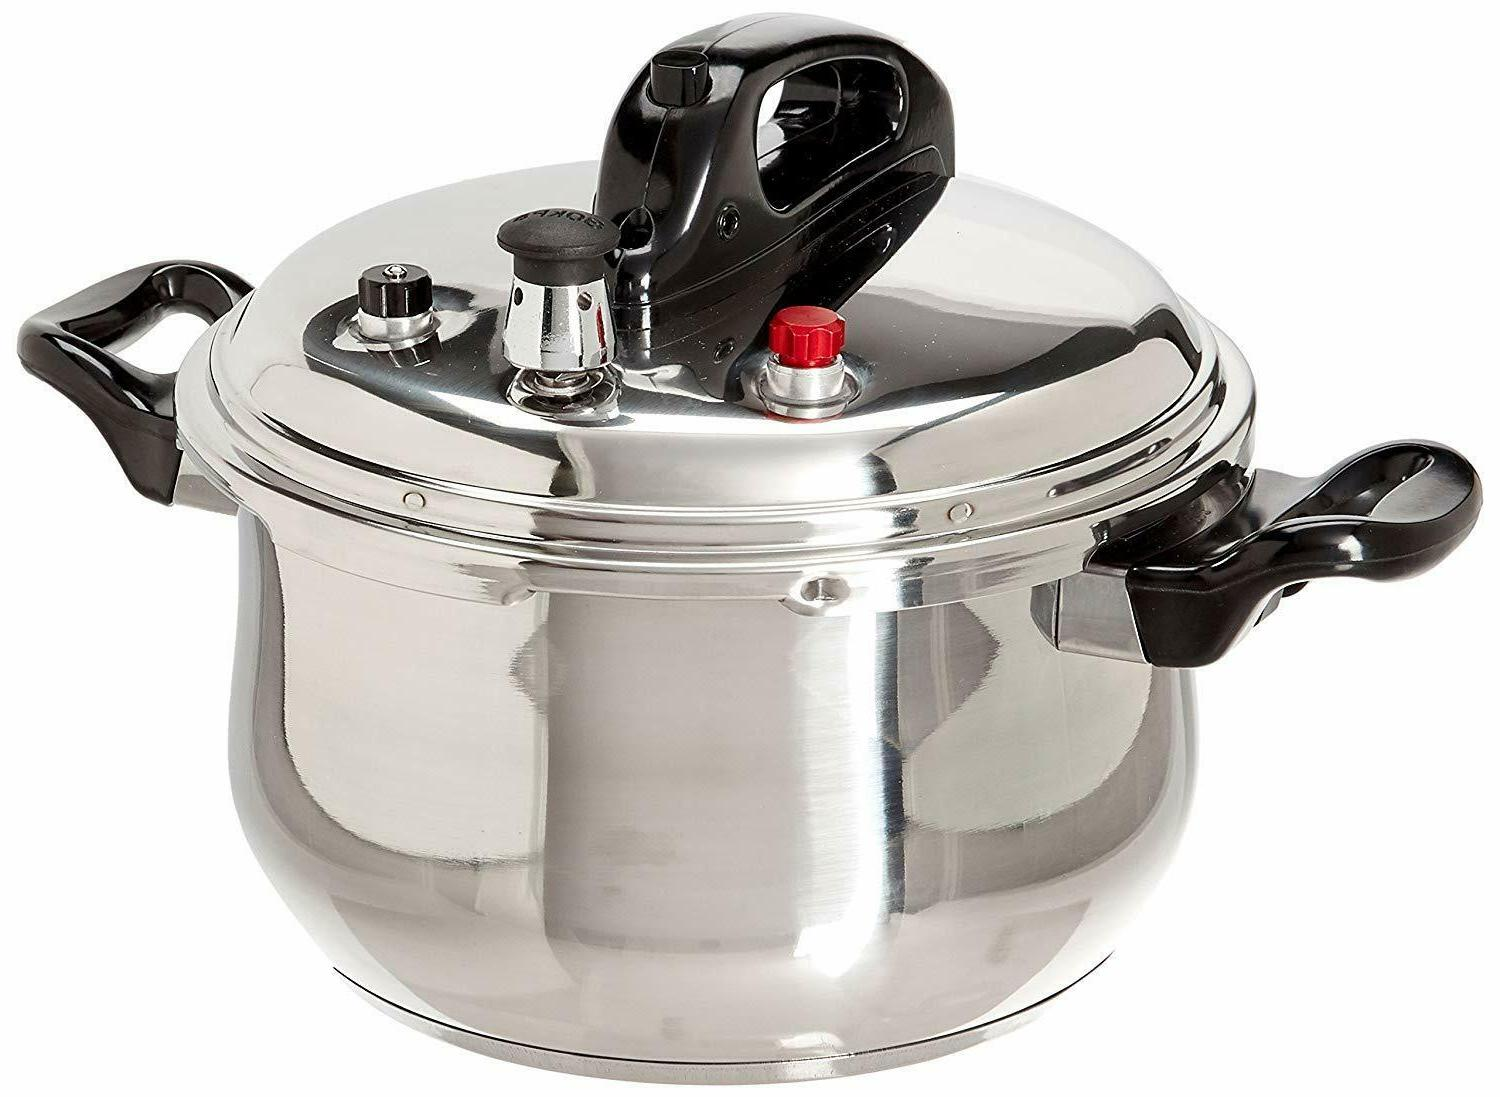 Stainless Cooker With Safety Quarts,Silver